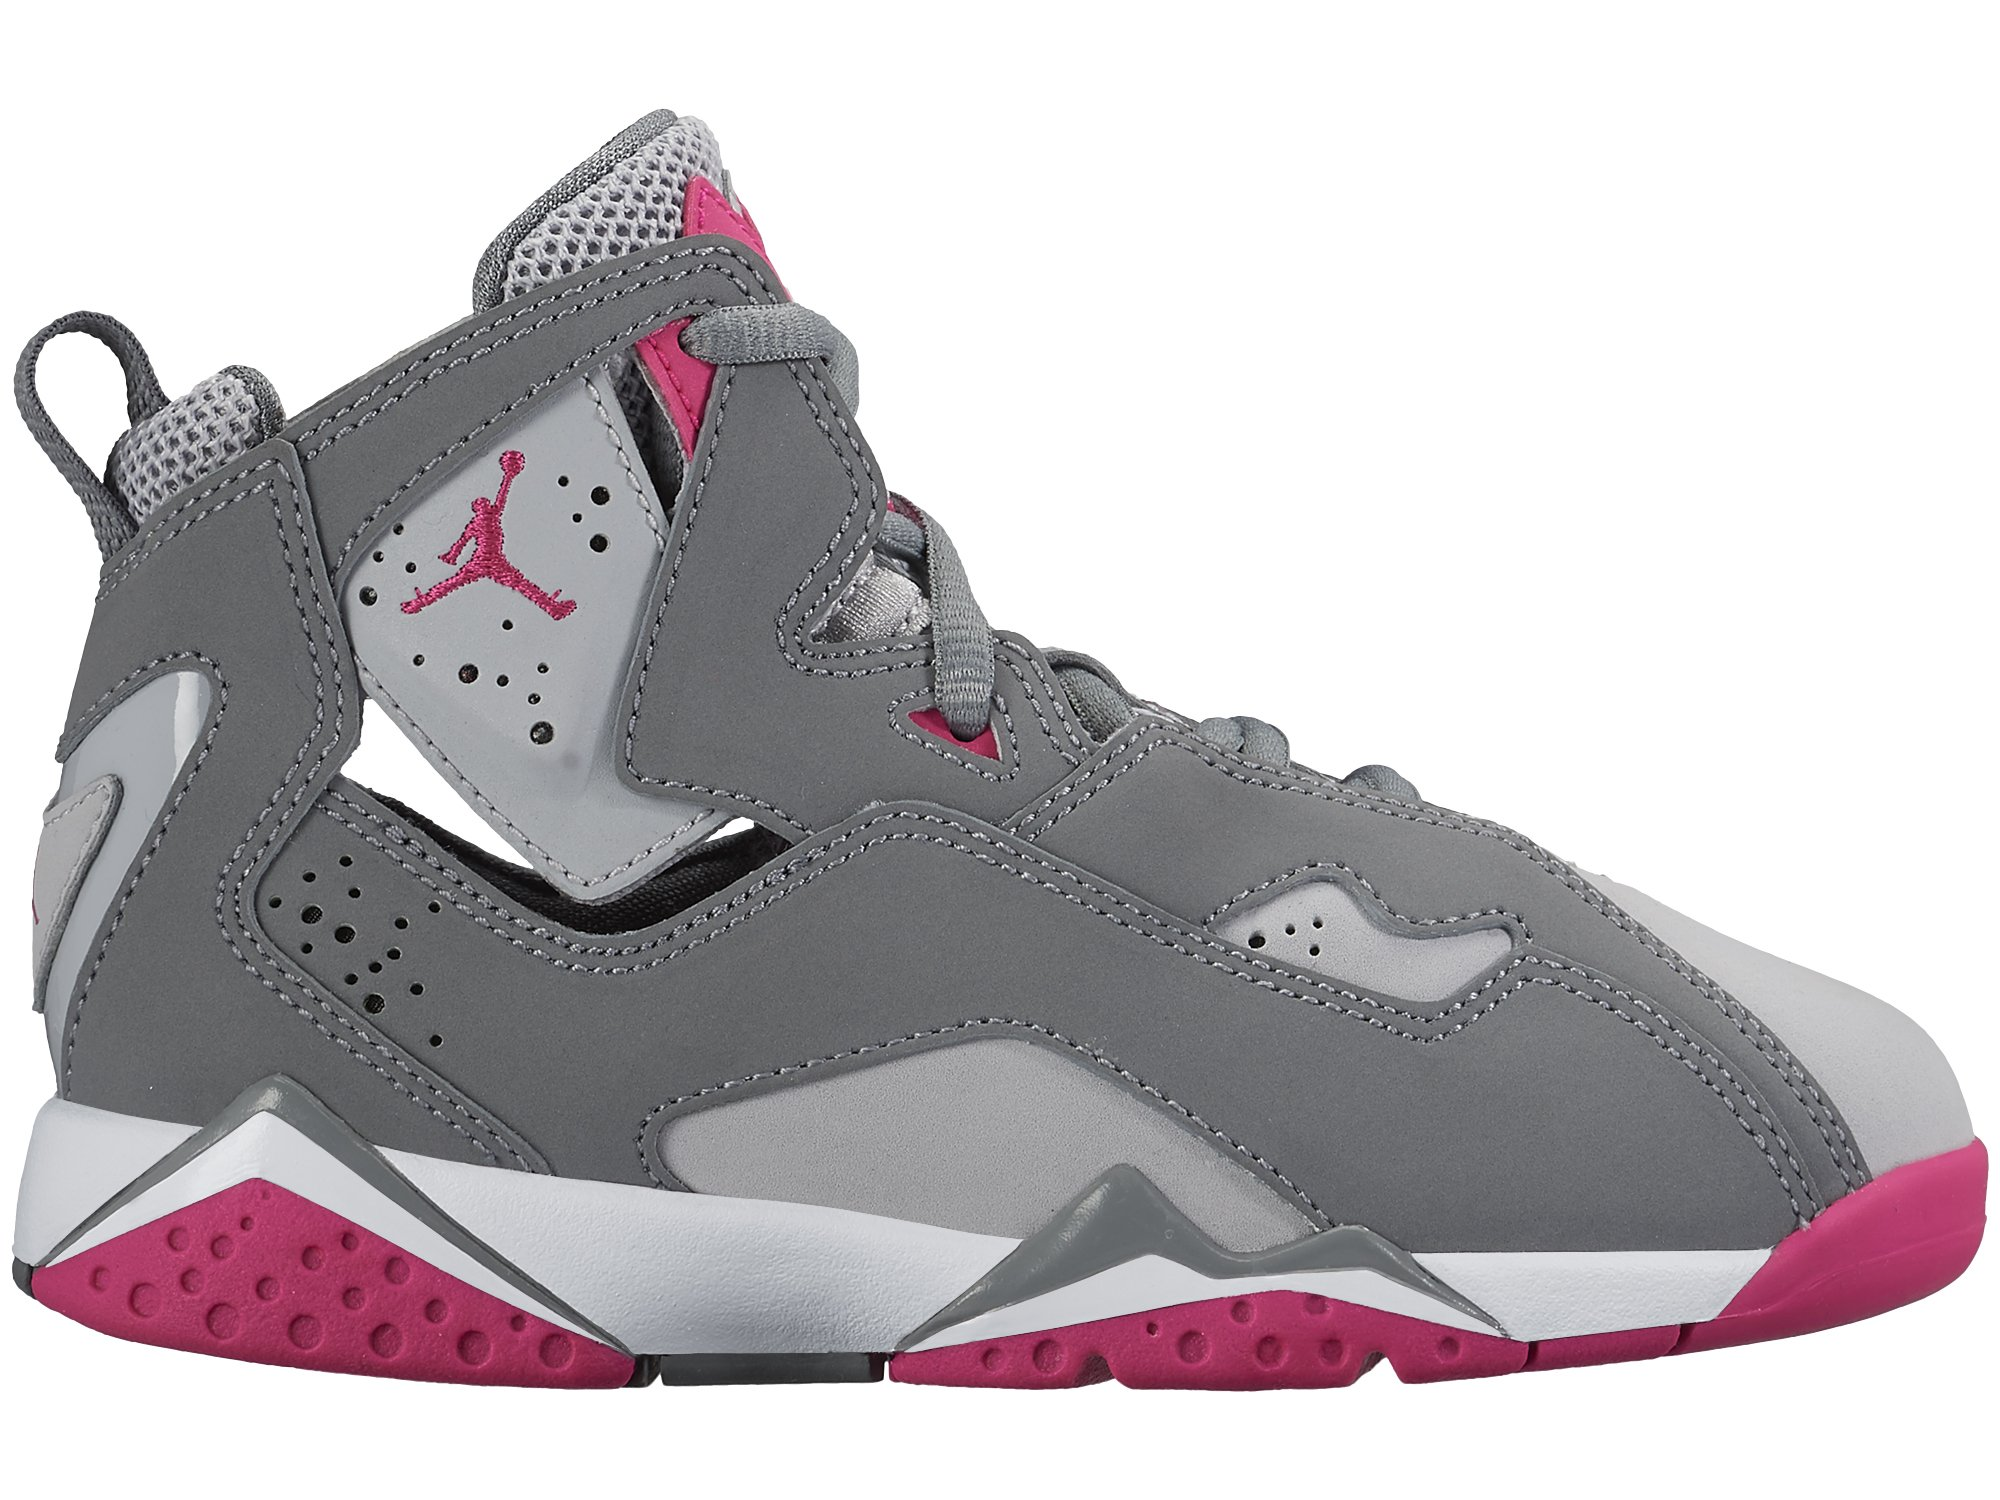 JORDAN KIDS JORDAN TRUE FLIGHT GP GREY GREY PINK WHITE SIZE 2 by NIKE